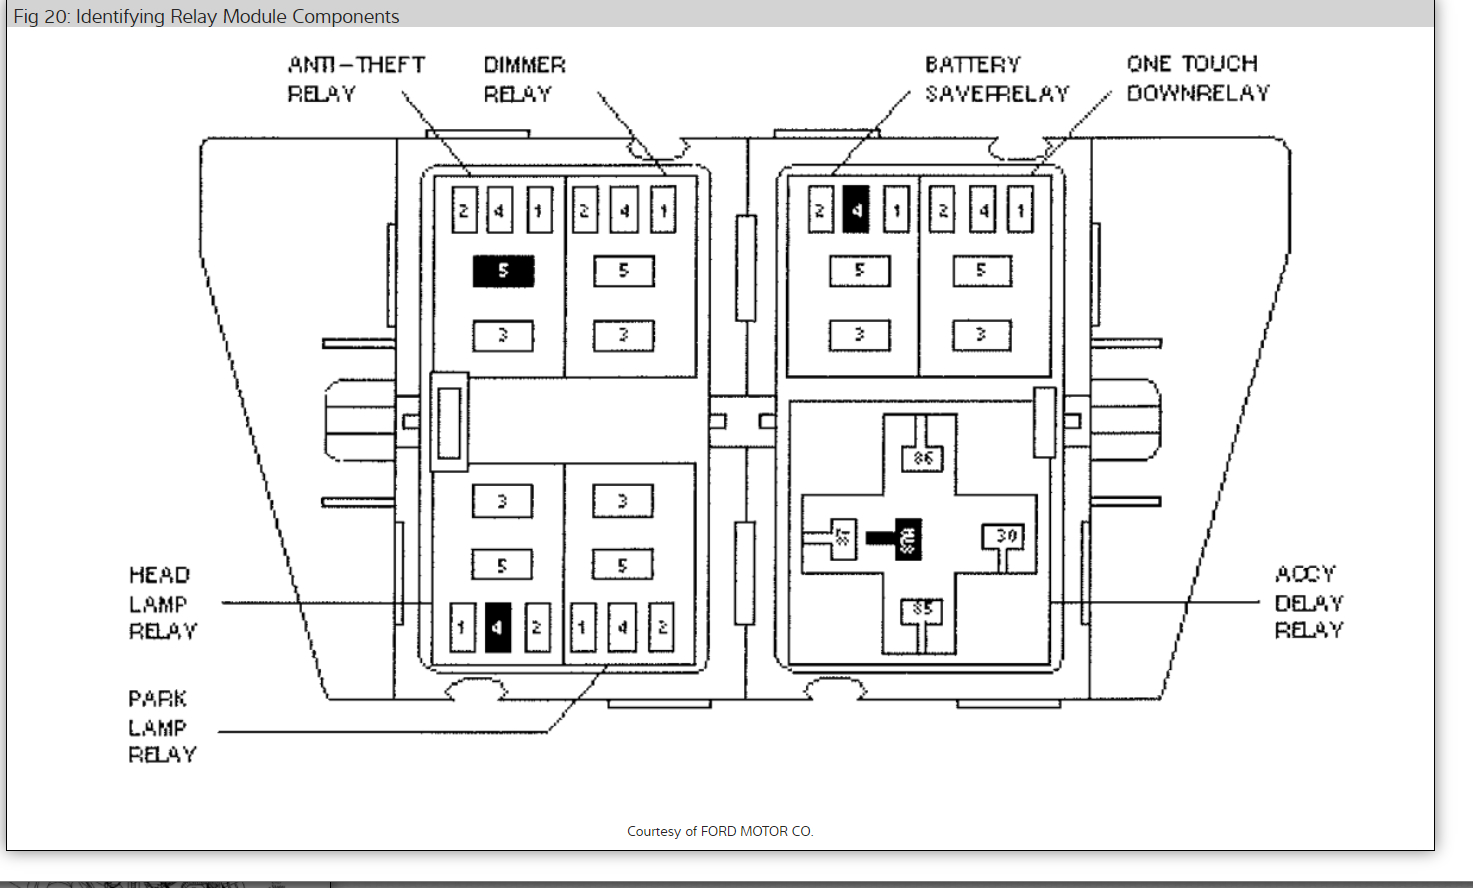 Fuse Box Diagram I Have Lost The Manual And Need The